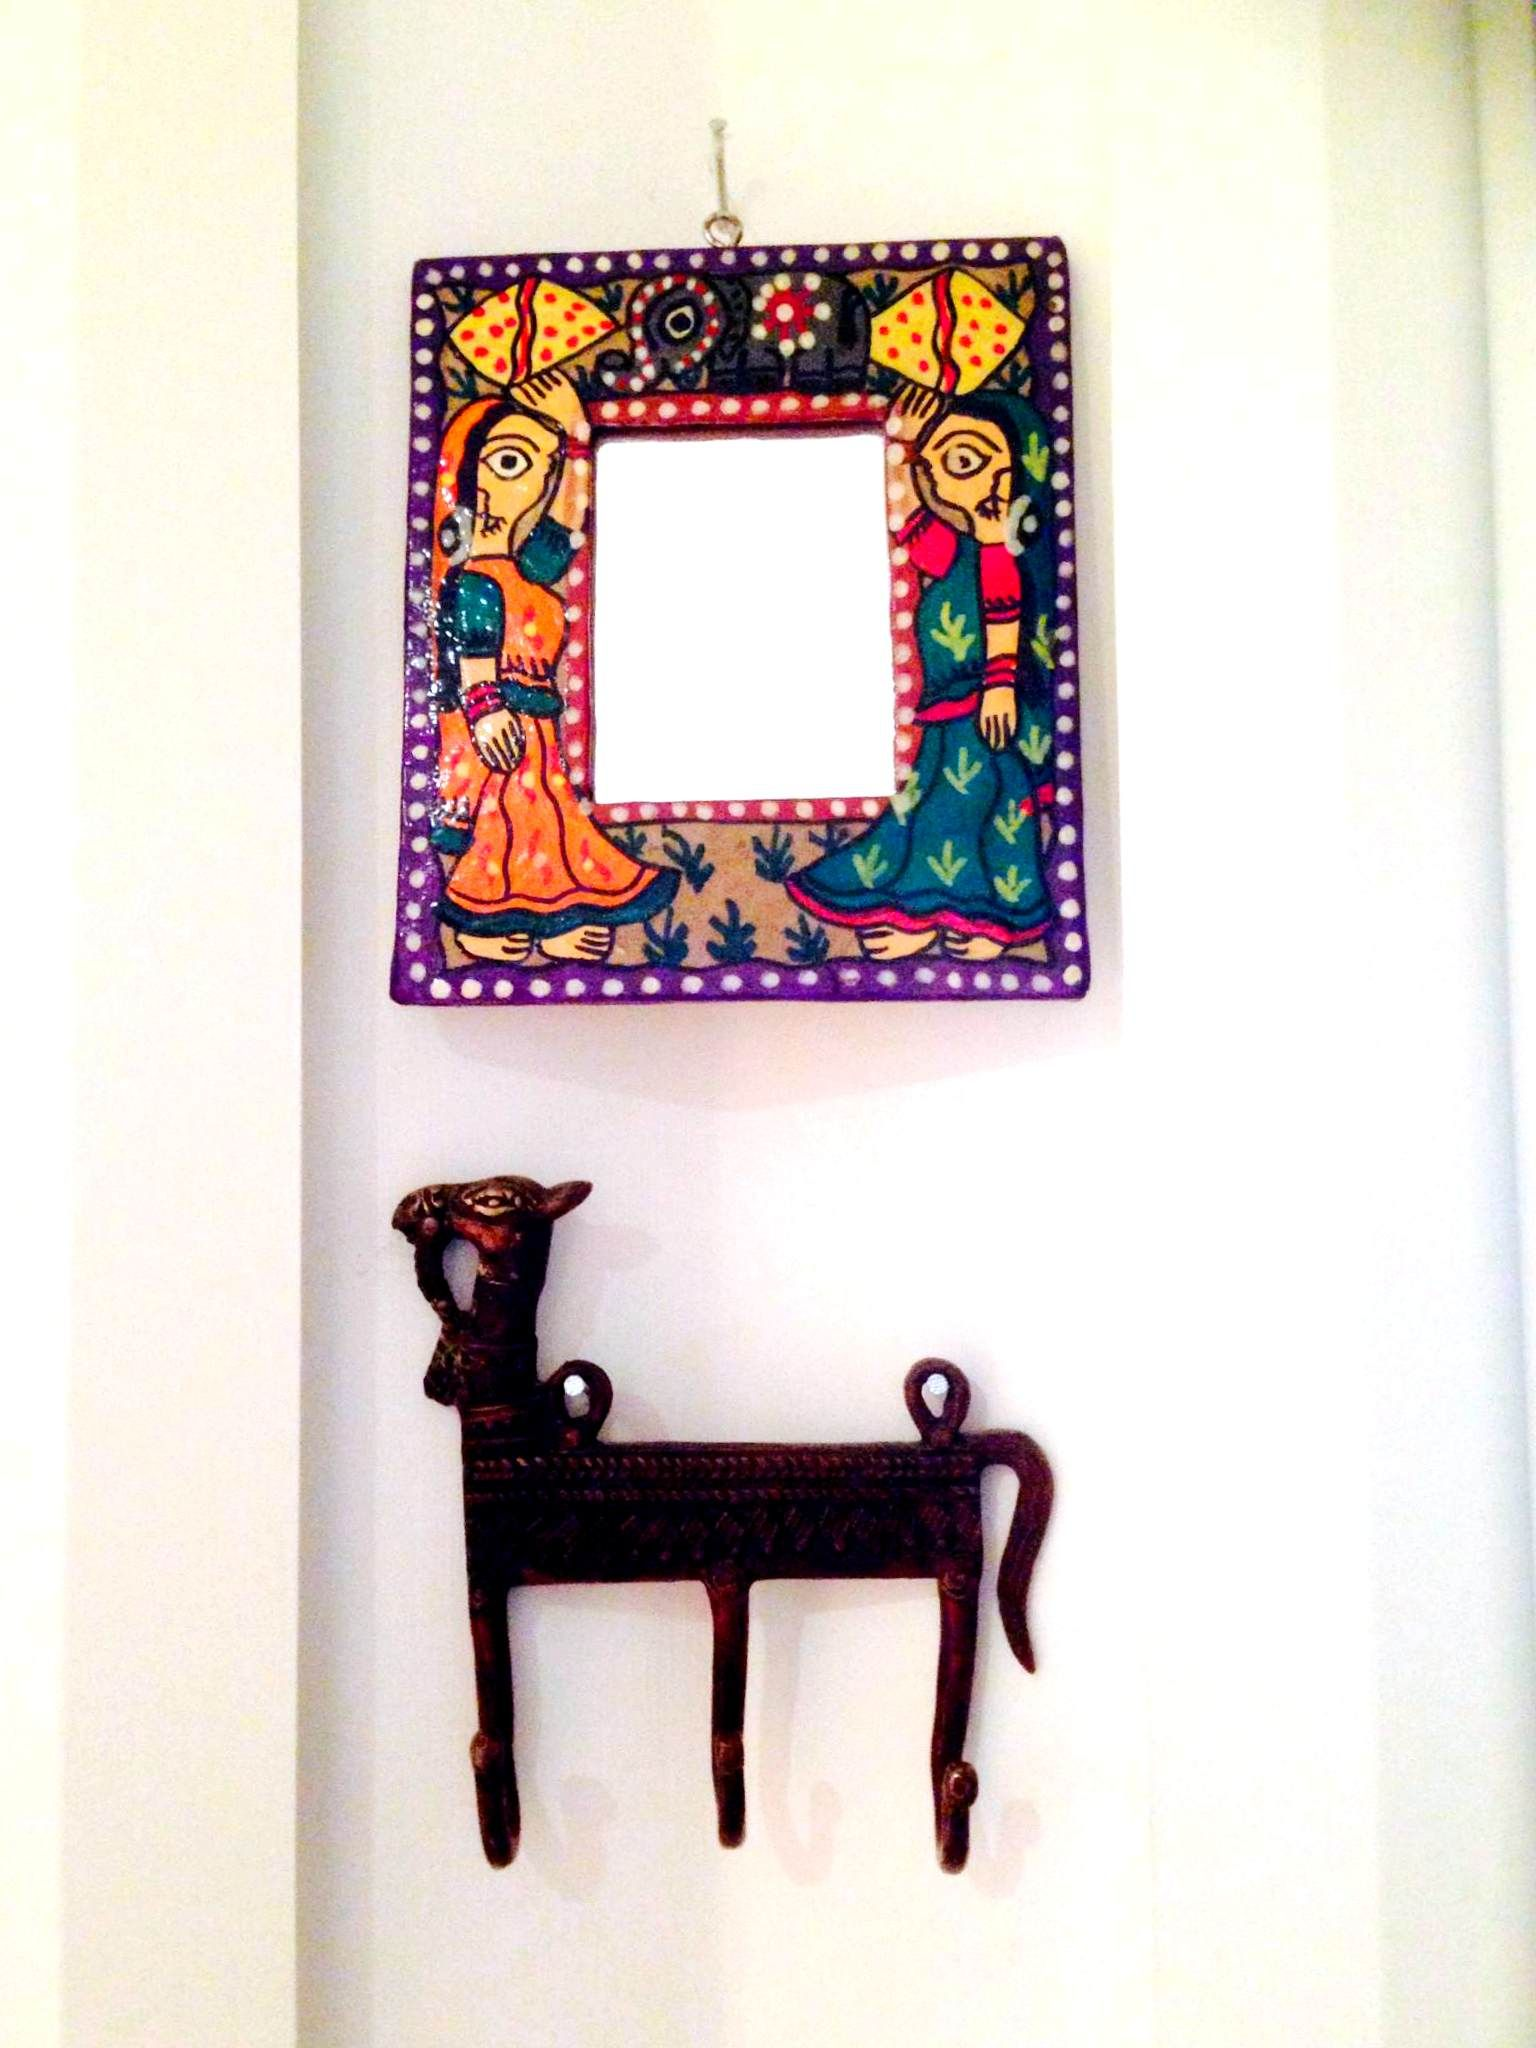 Janakpuri hand painted mirror frame £8.99 | biya | Pinterest | Decor ...